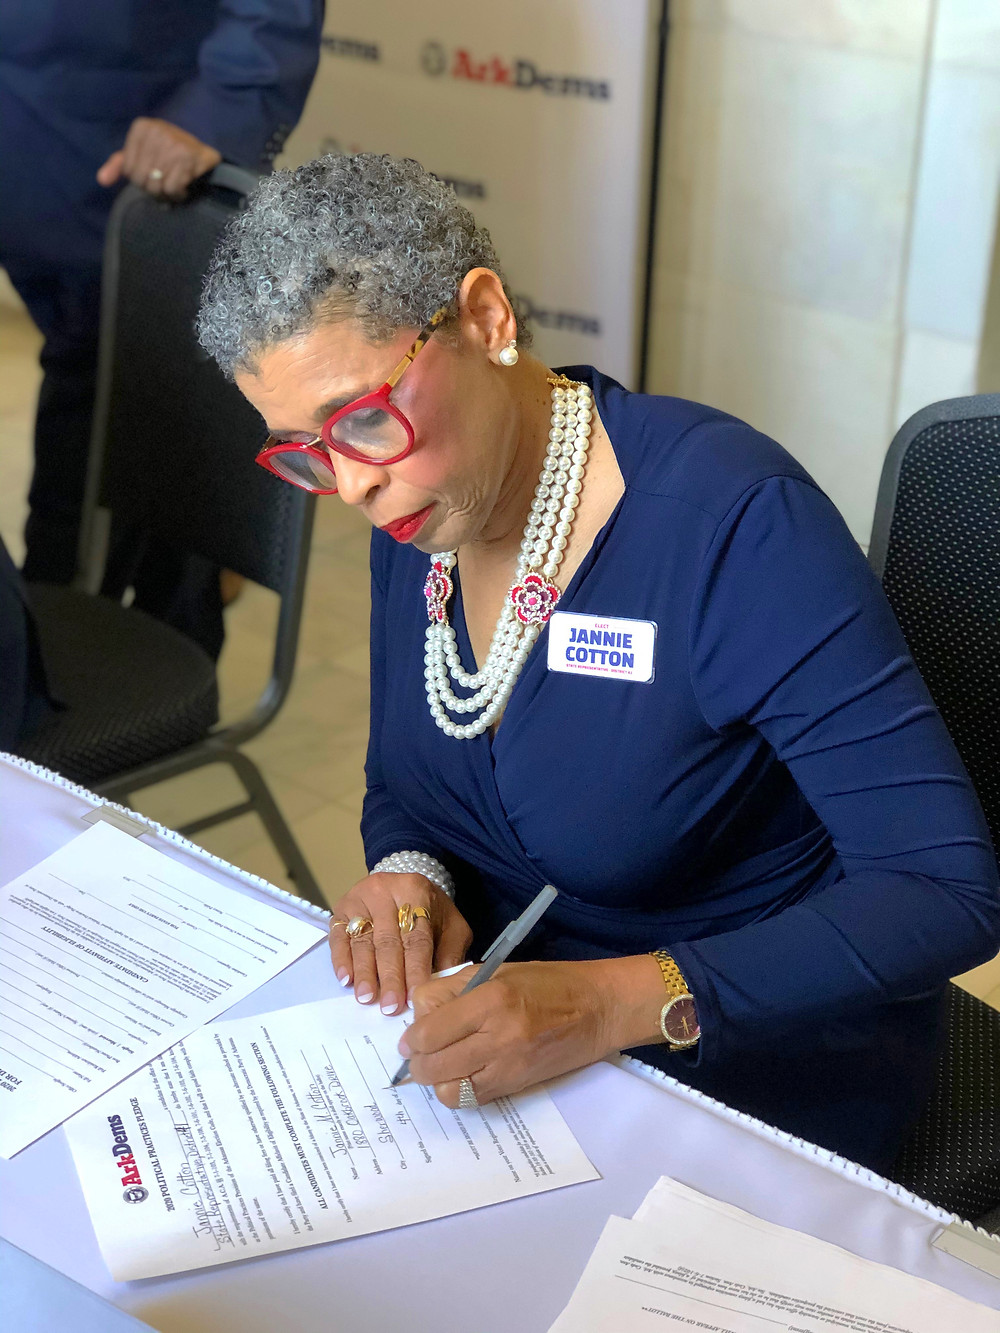 Jannie Cotton in action signing the paperwork to officially file to run for office.